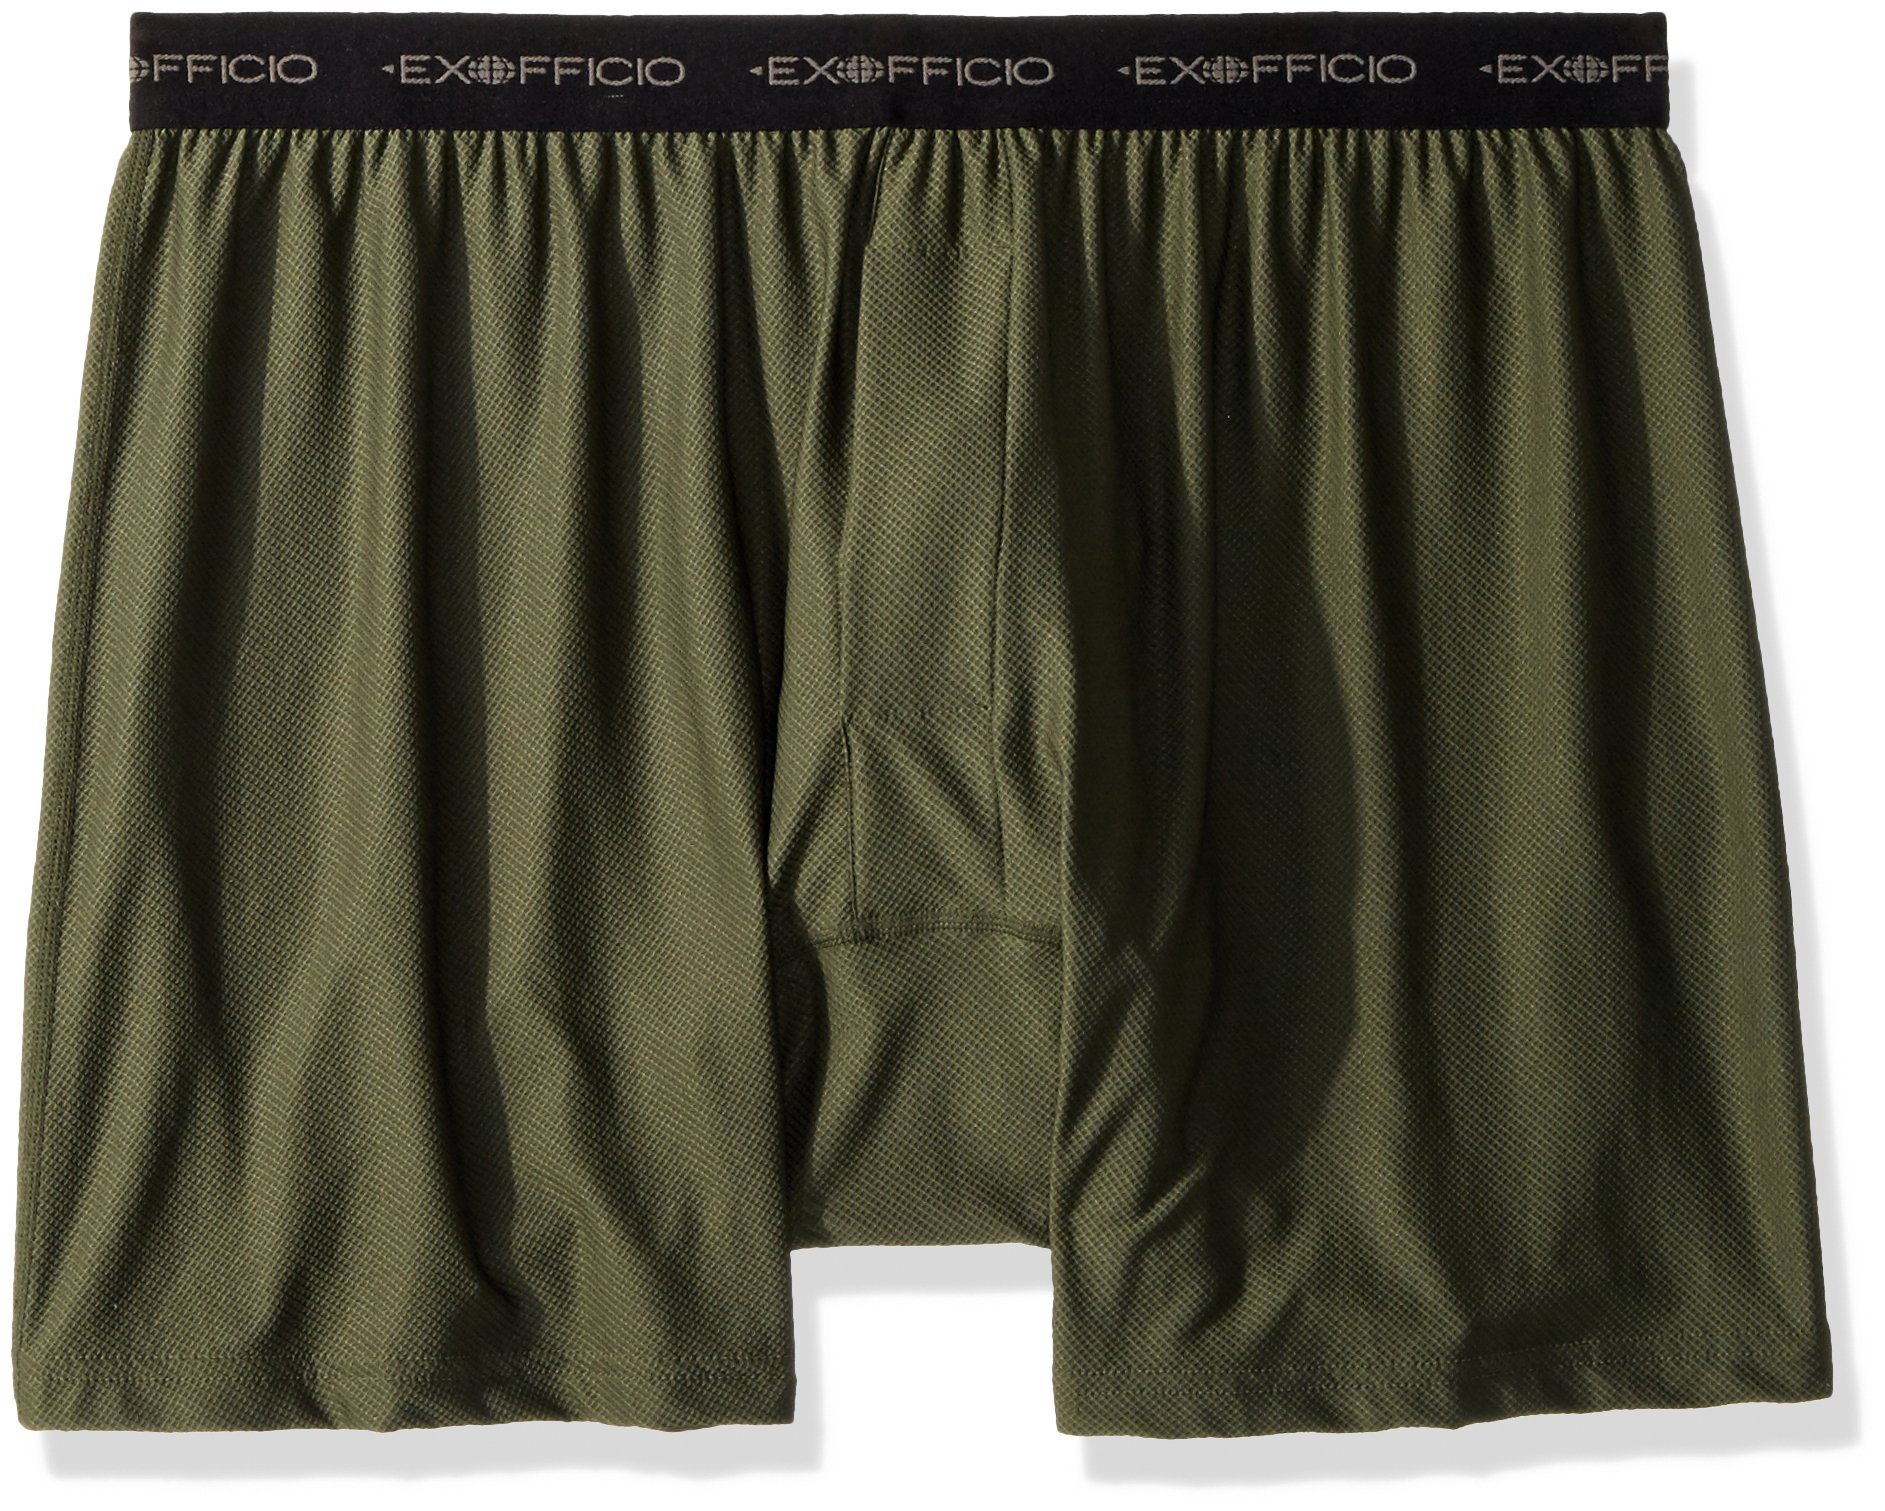 ExOfficio Men's Give-N-Go Boxer Shorts, Nordic, Large